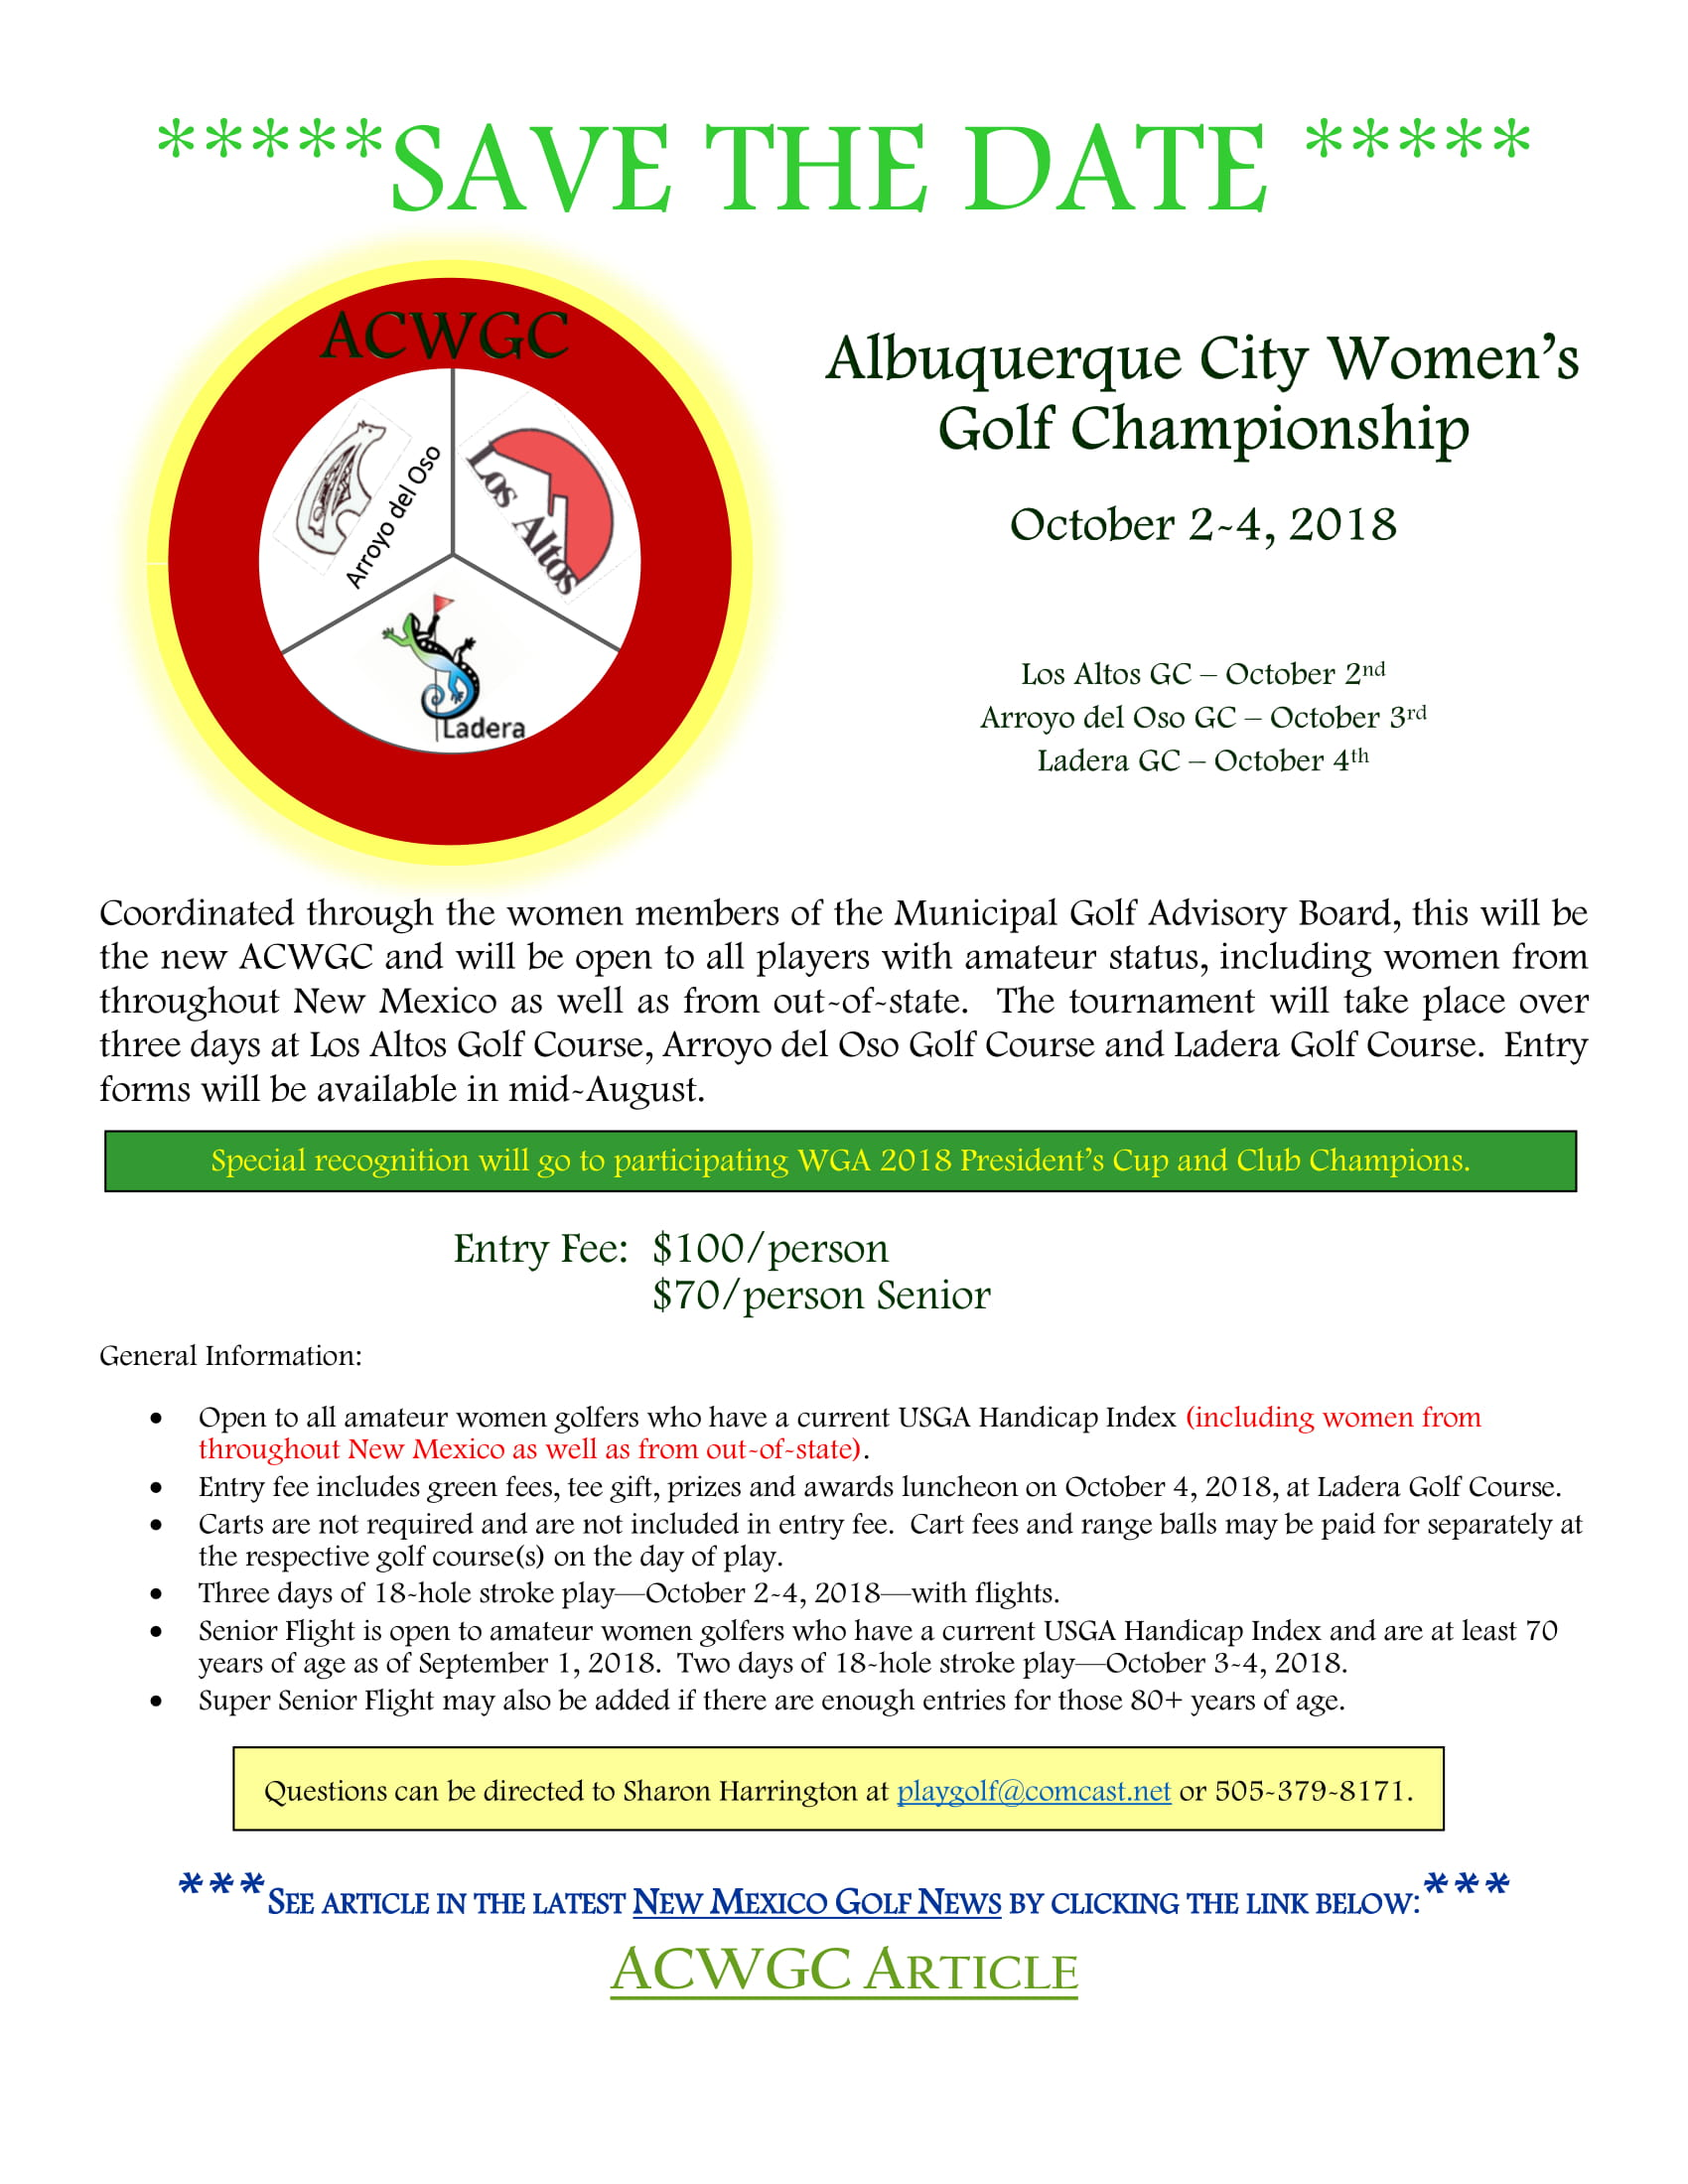 ABQ City Women's Golf Championships Save the Date